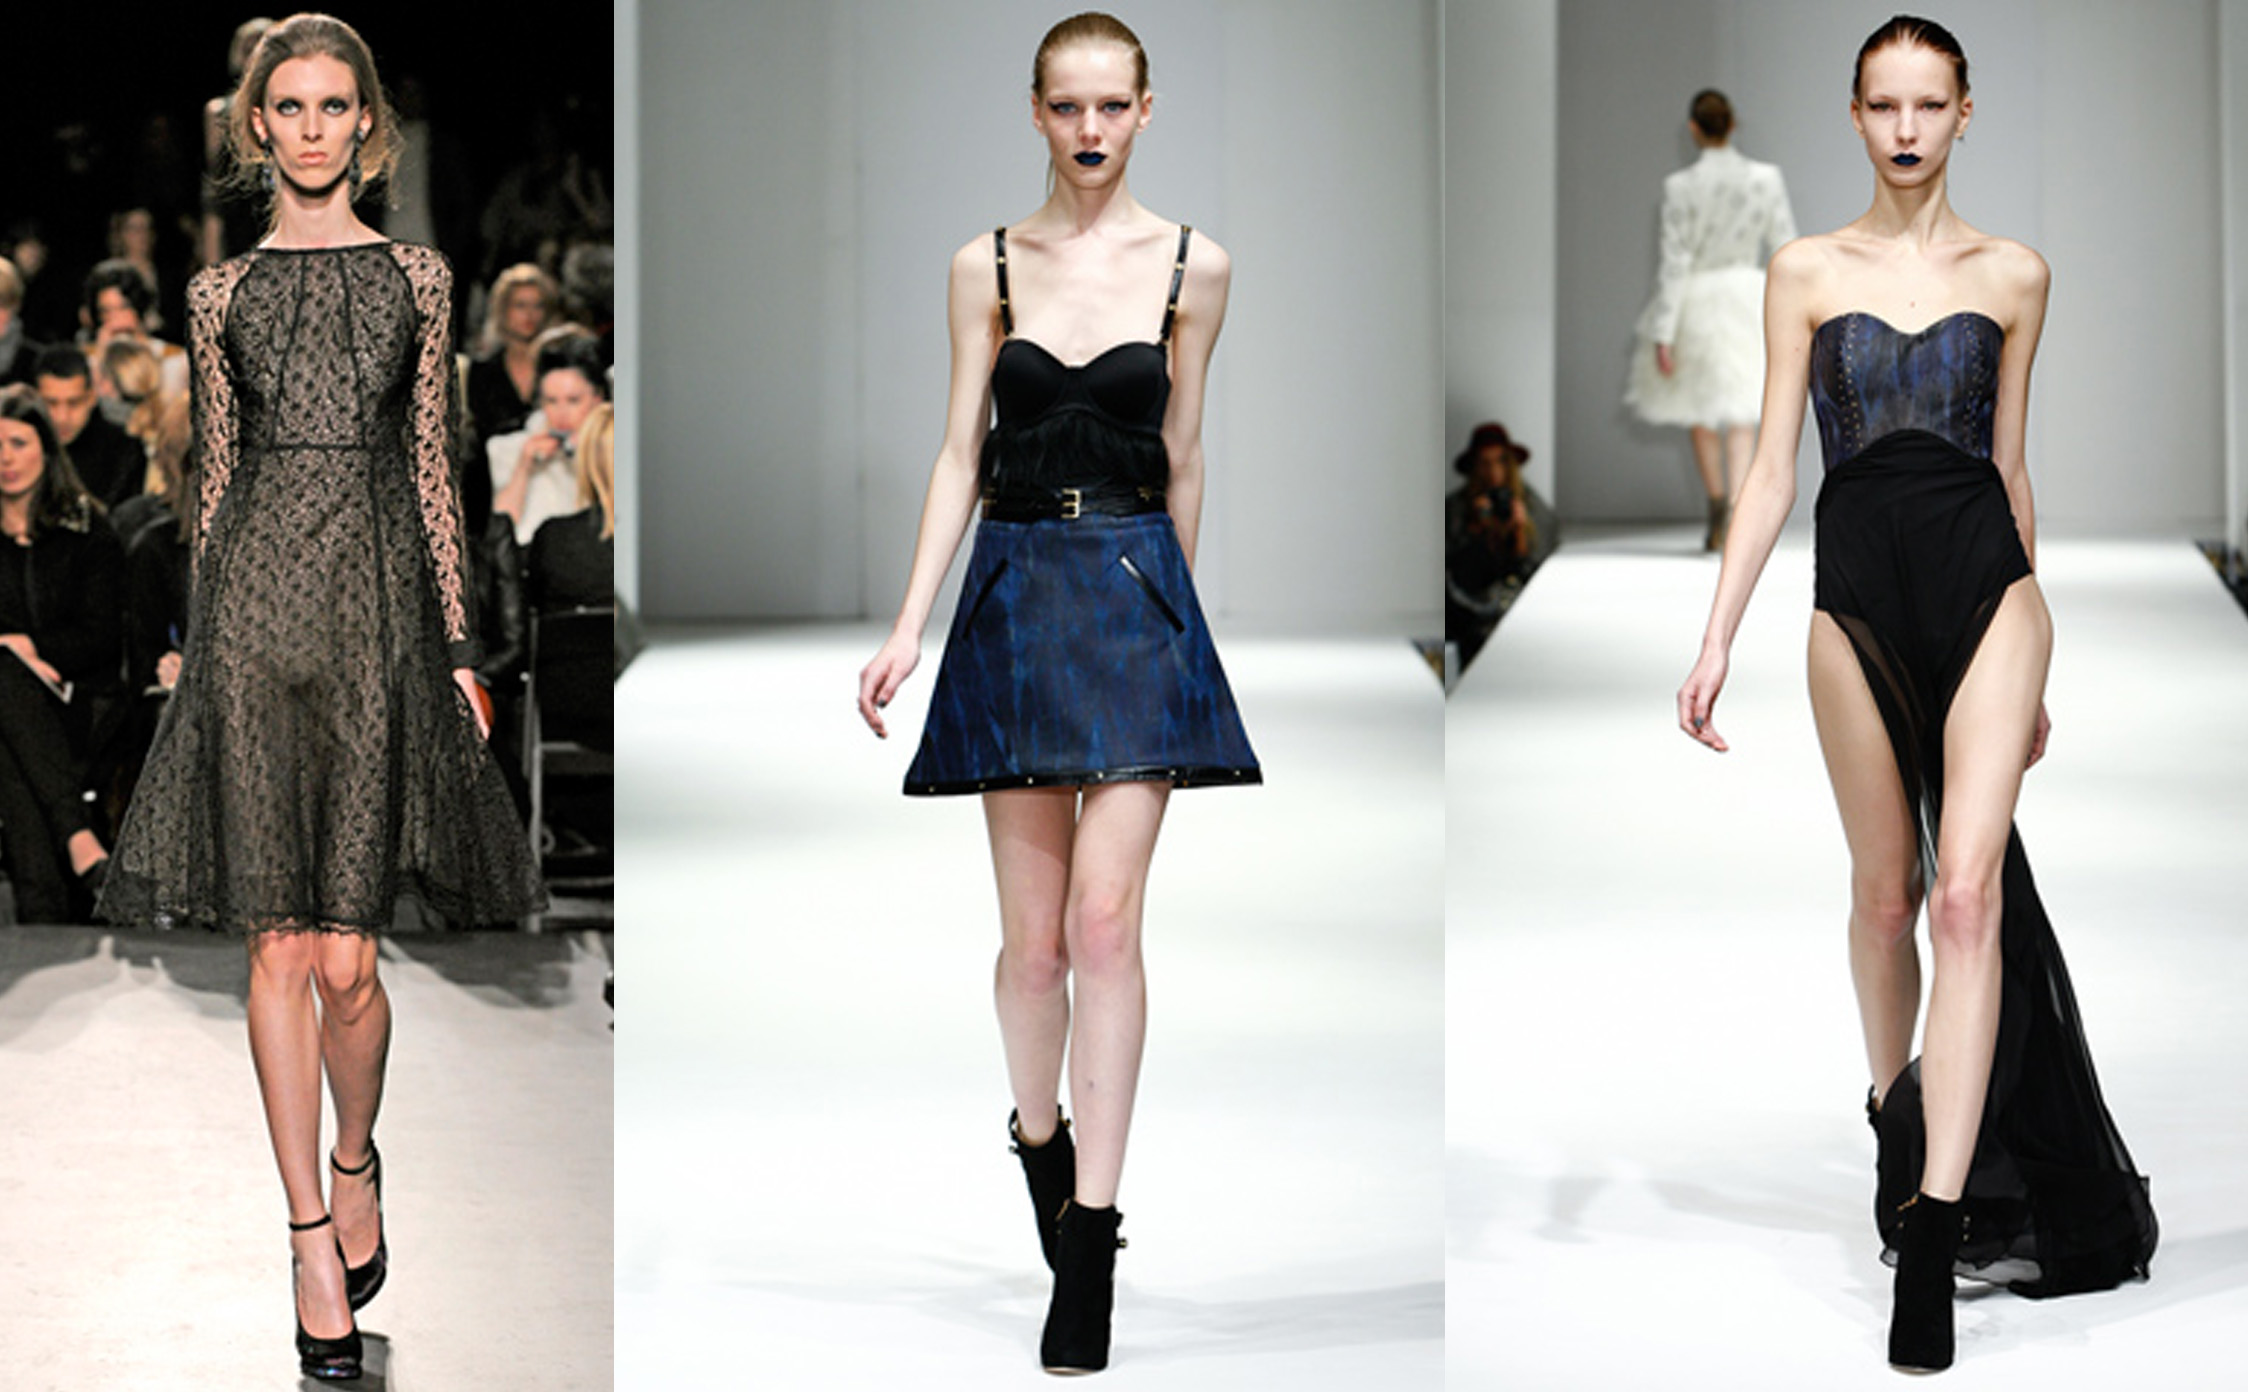 Image result for thin models anorexic